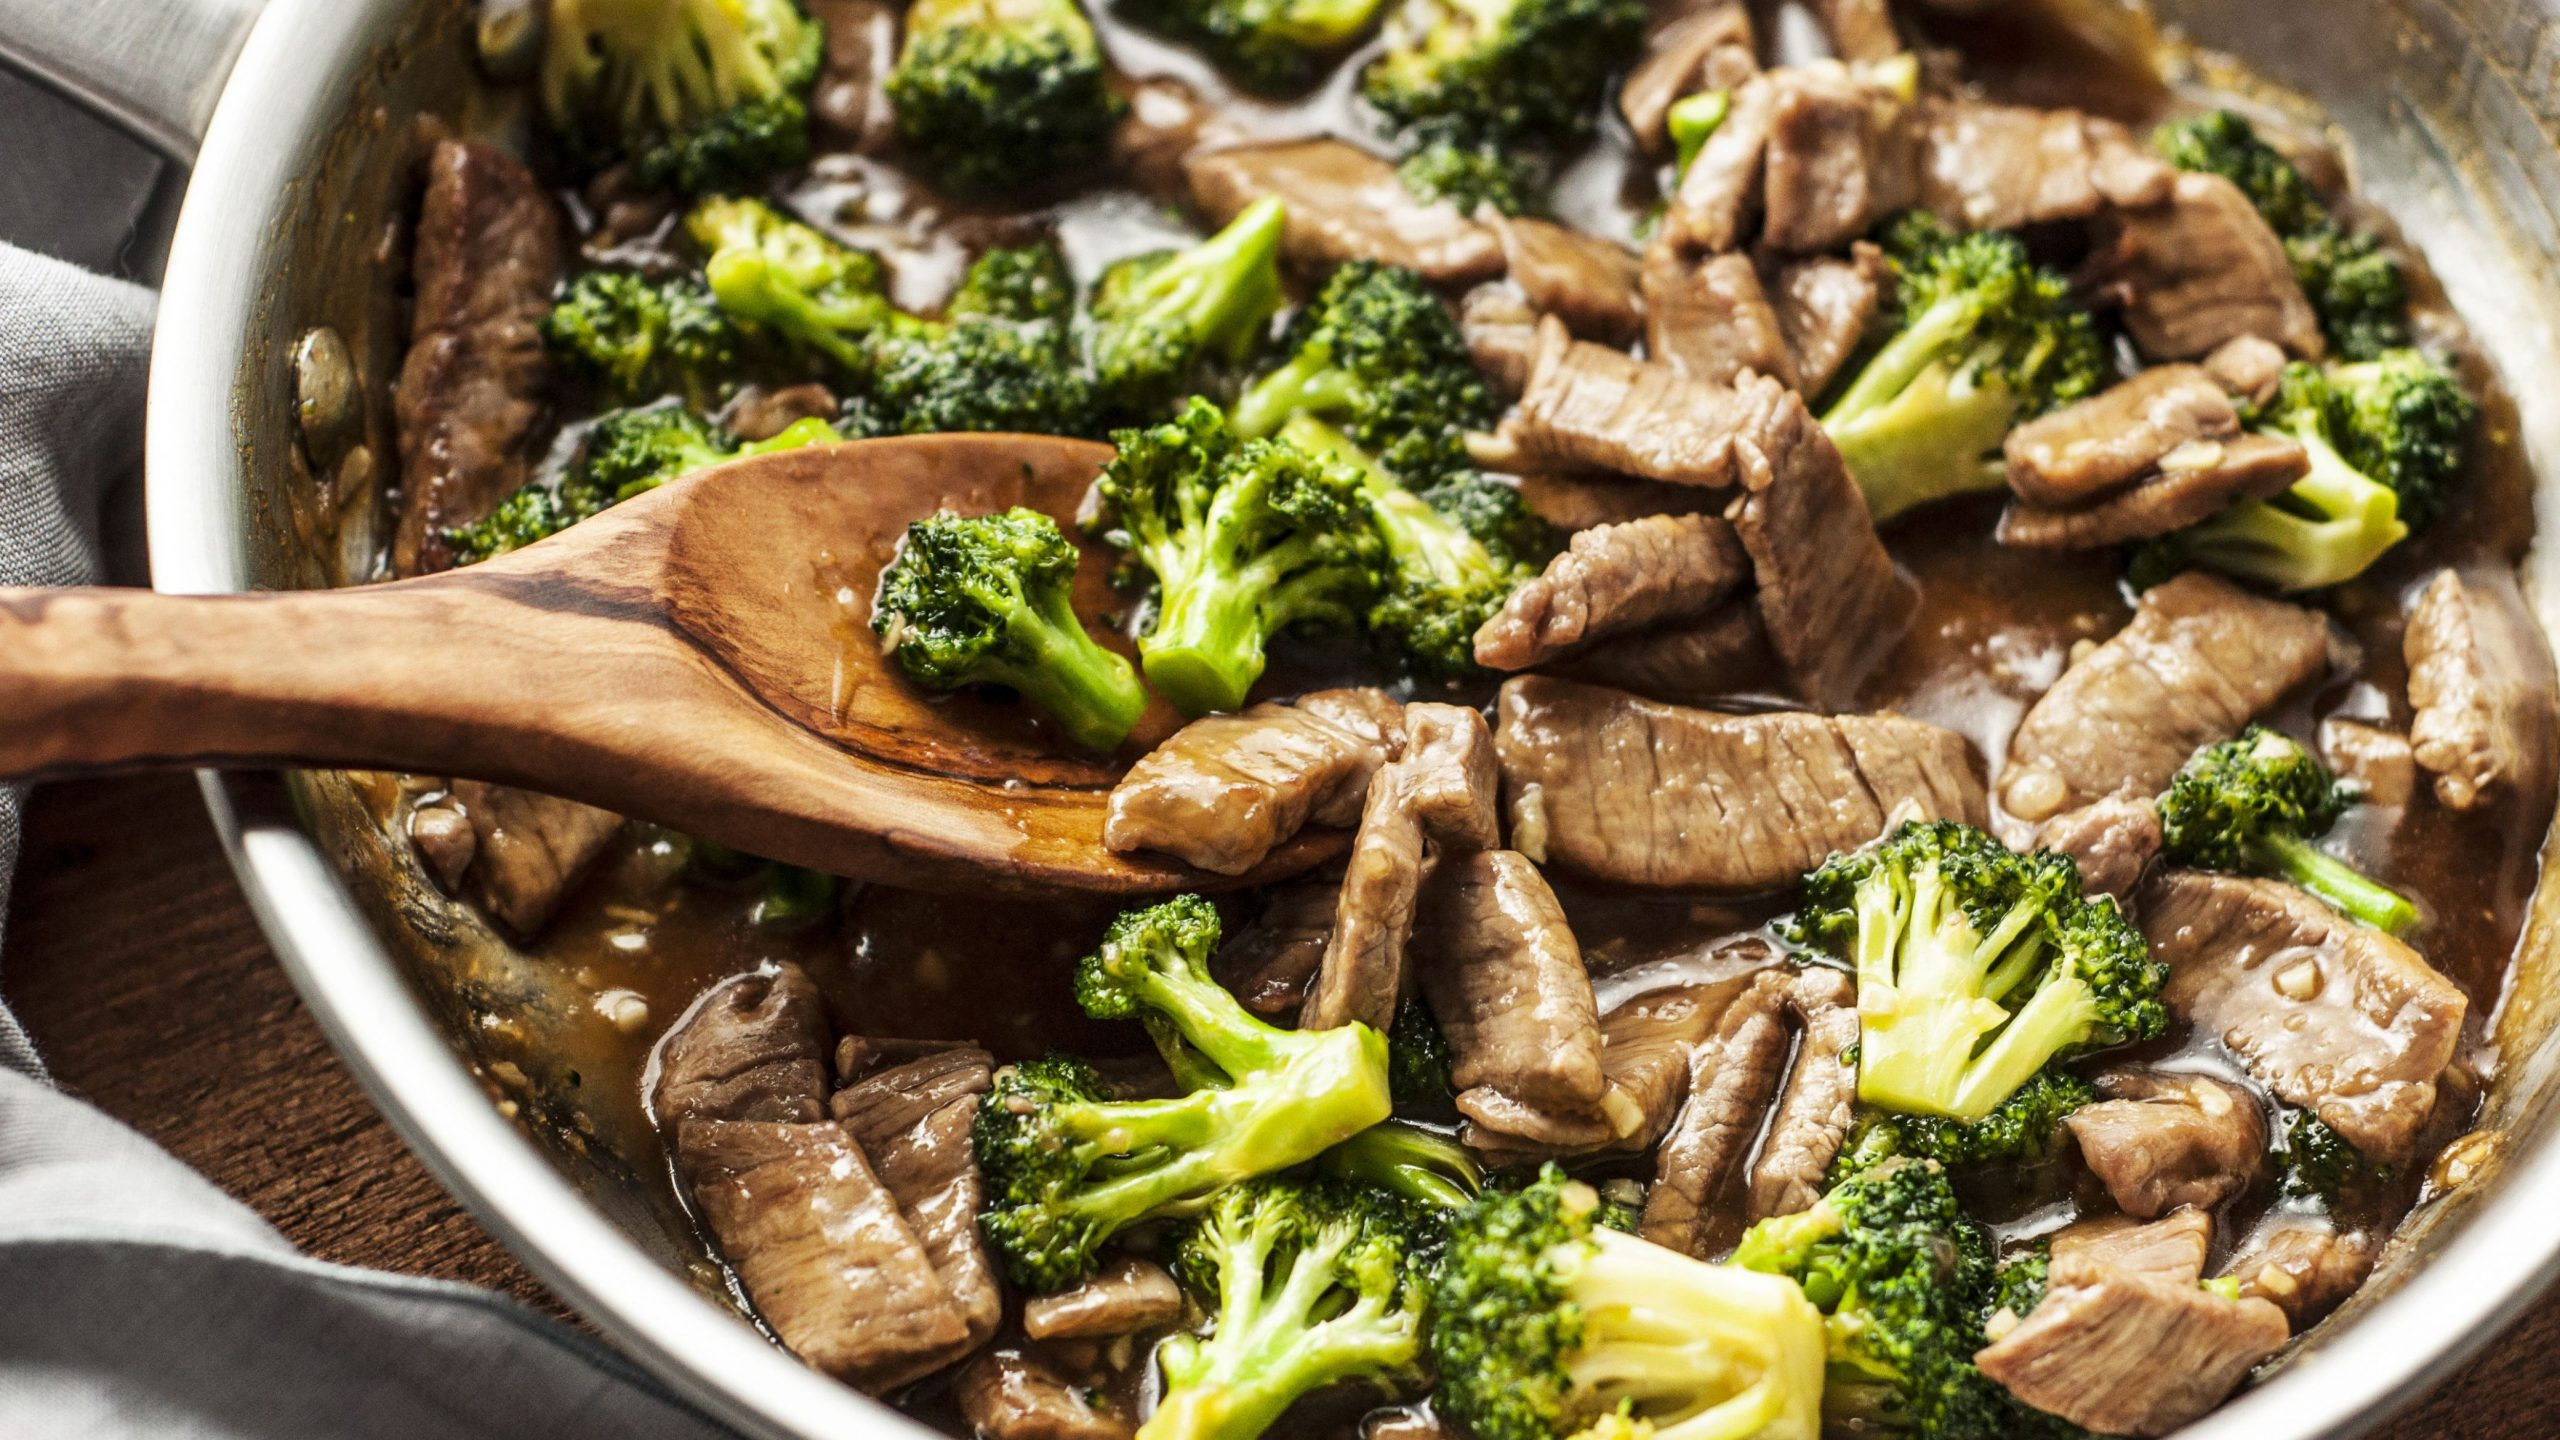 Low-Calorie Beef and Broccoli Stir-Fry - Beef Recipes Healthy Easy